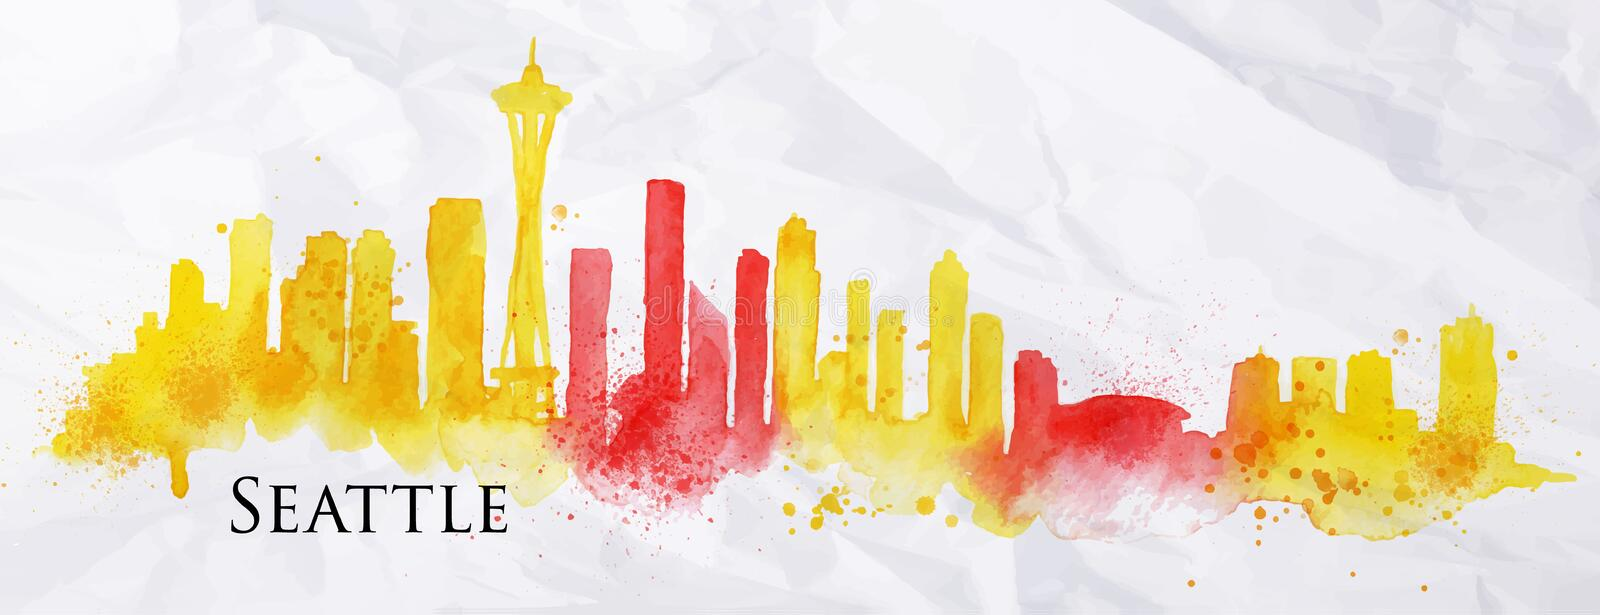 Aquarelle Seattle de silhouette illustration libre de droits